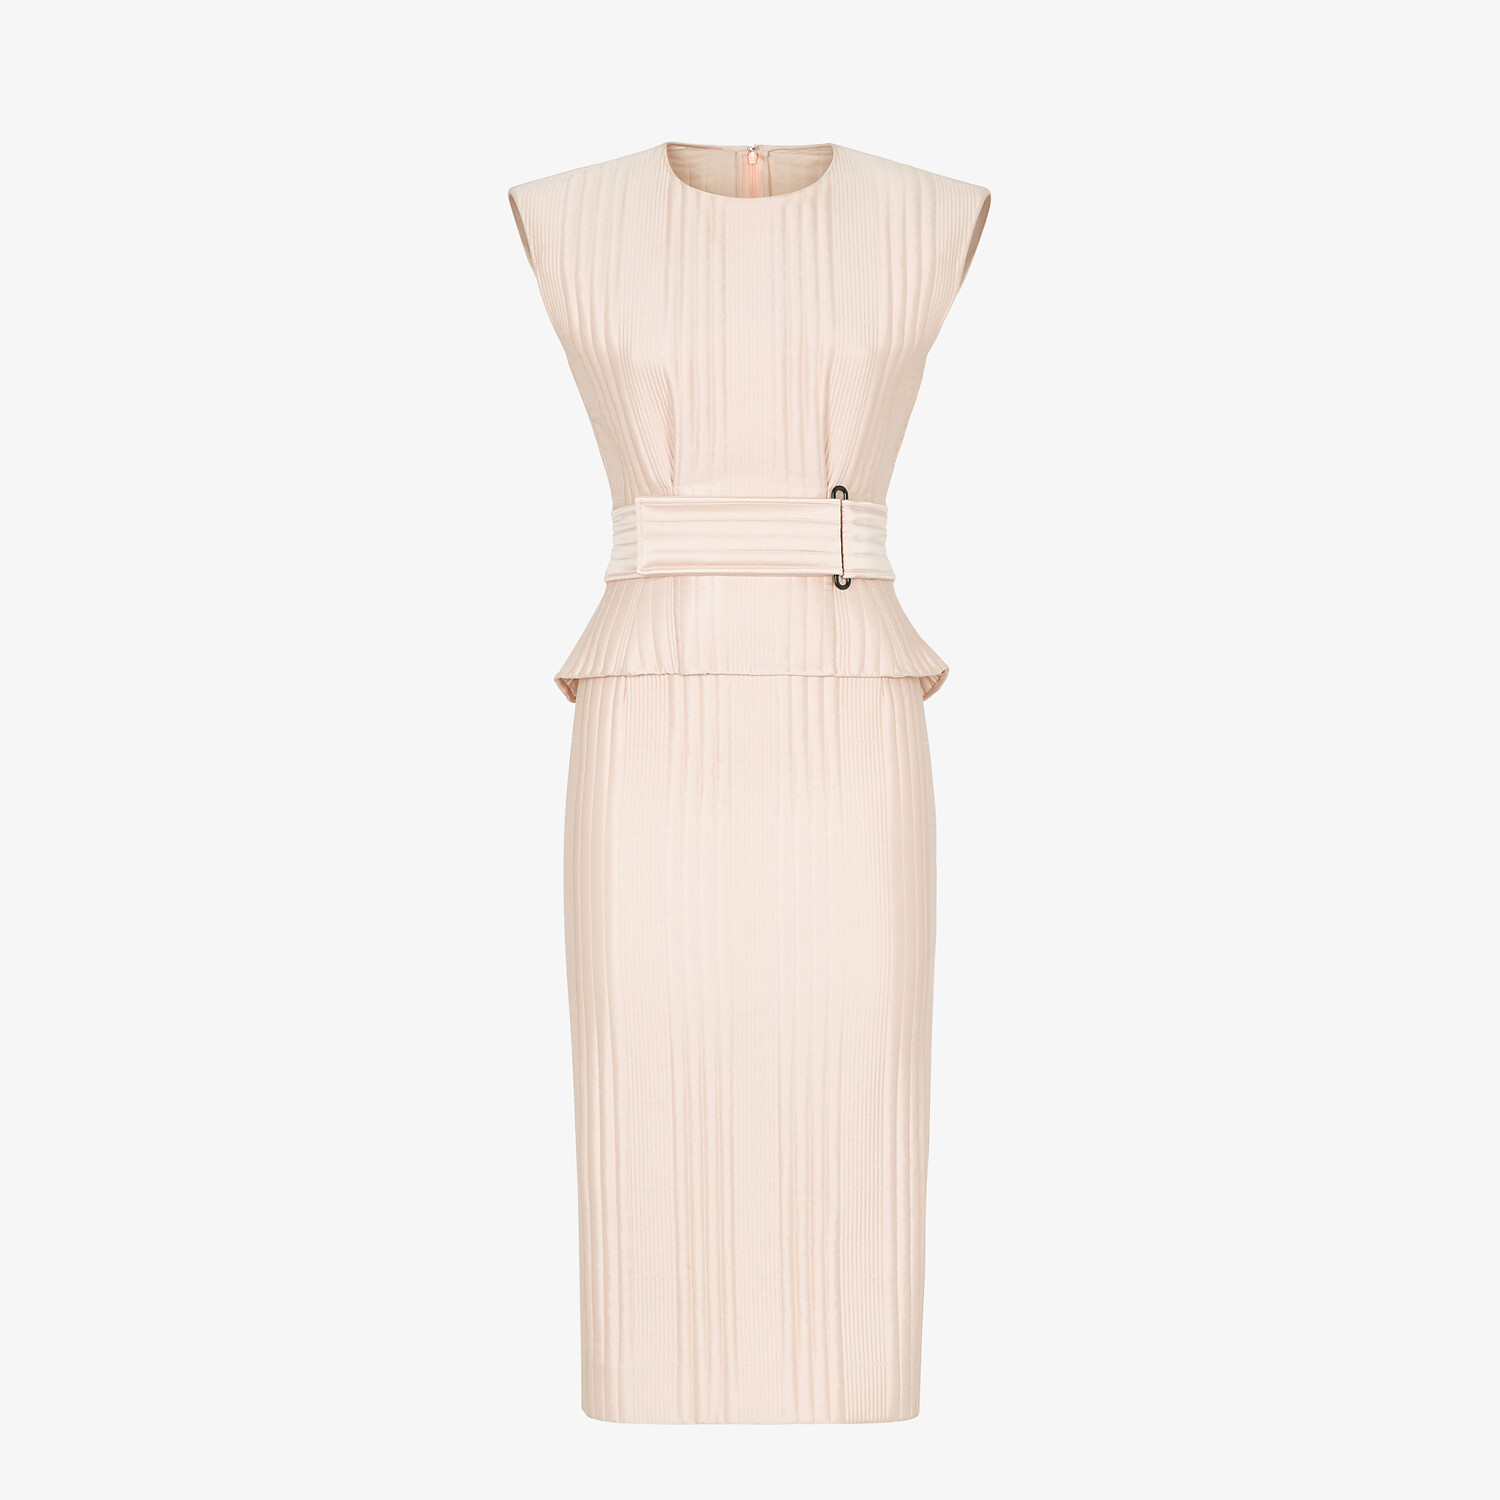 FENDI DRESS - Pink satin dress - view 1 detail